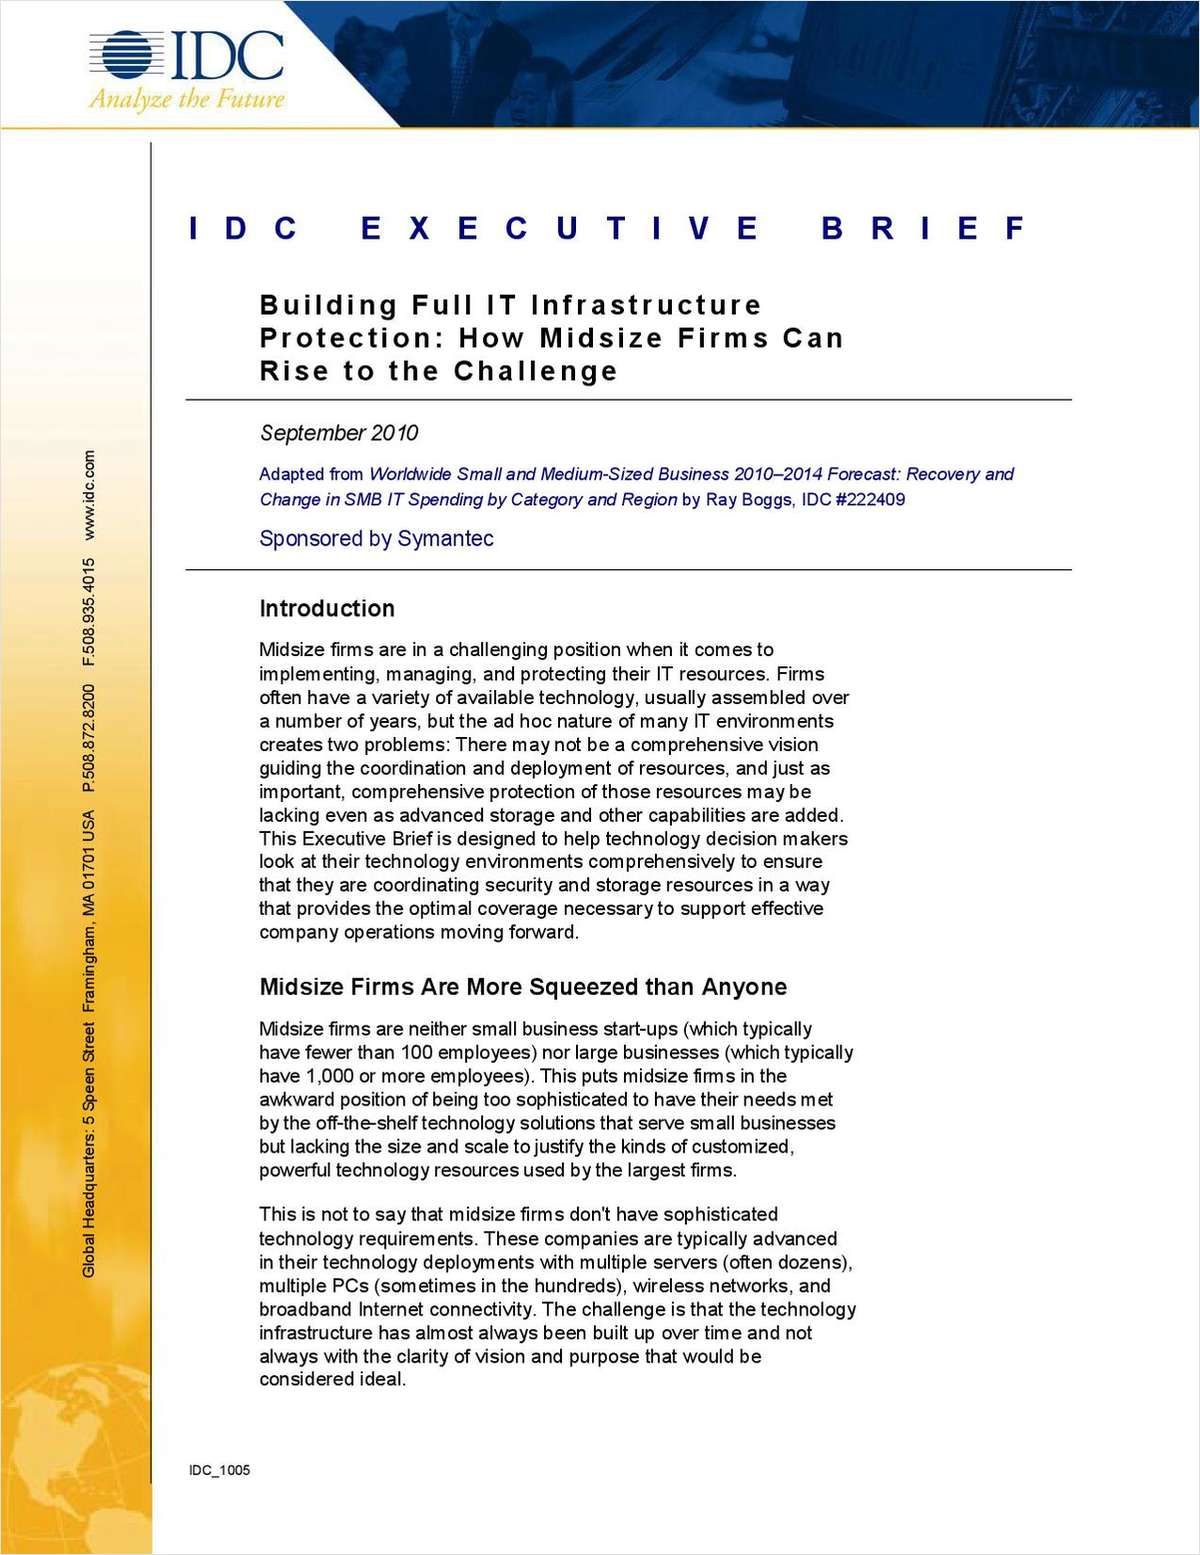 Building Full IT Infrastructure Protection: How Midsize Firms Can Rise to the Challenge